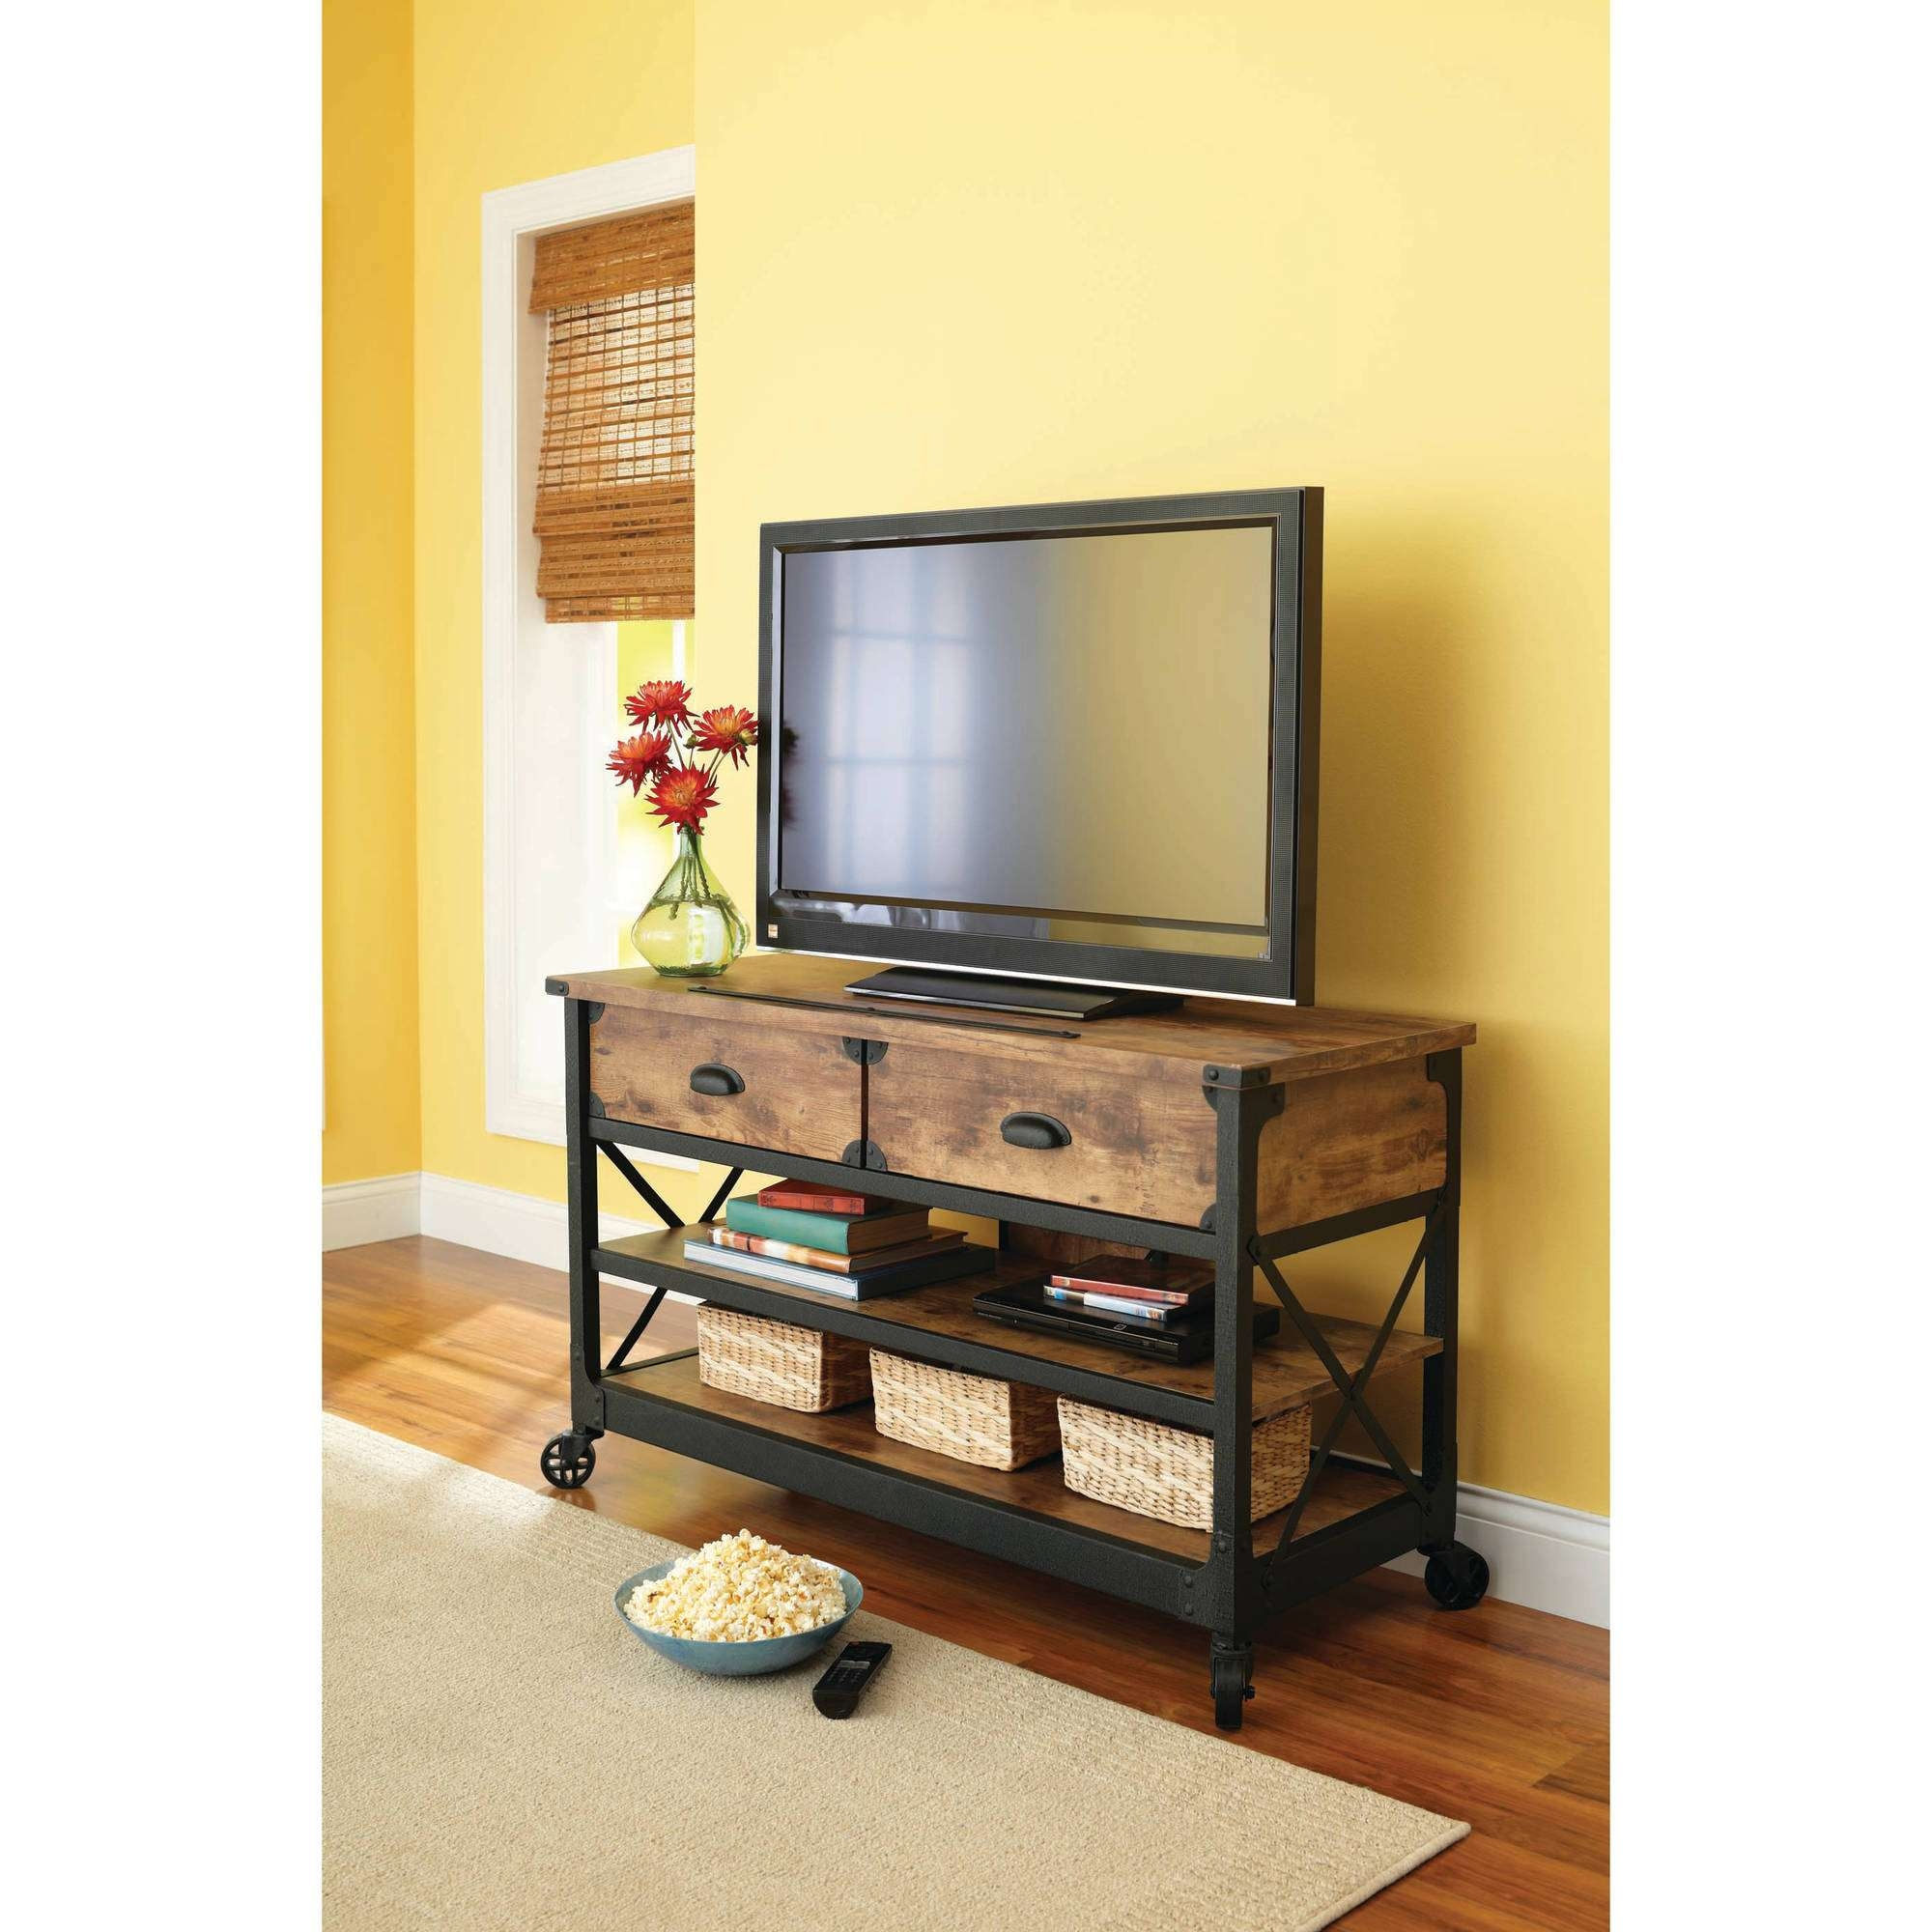 Better Homes And Gardens Rustic Country Living Room Set – Walmart In Tv Stands With Baskets (View 2 of 15)